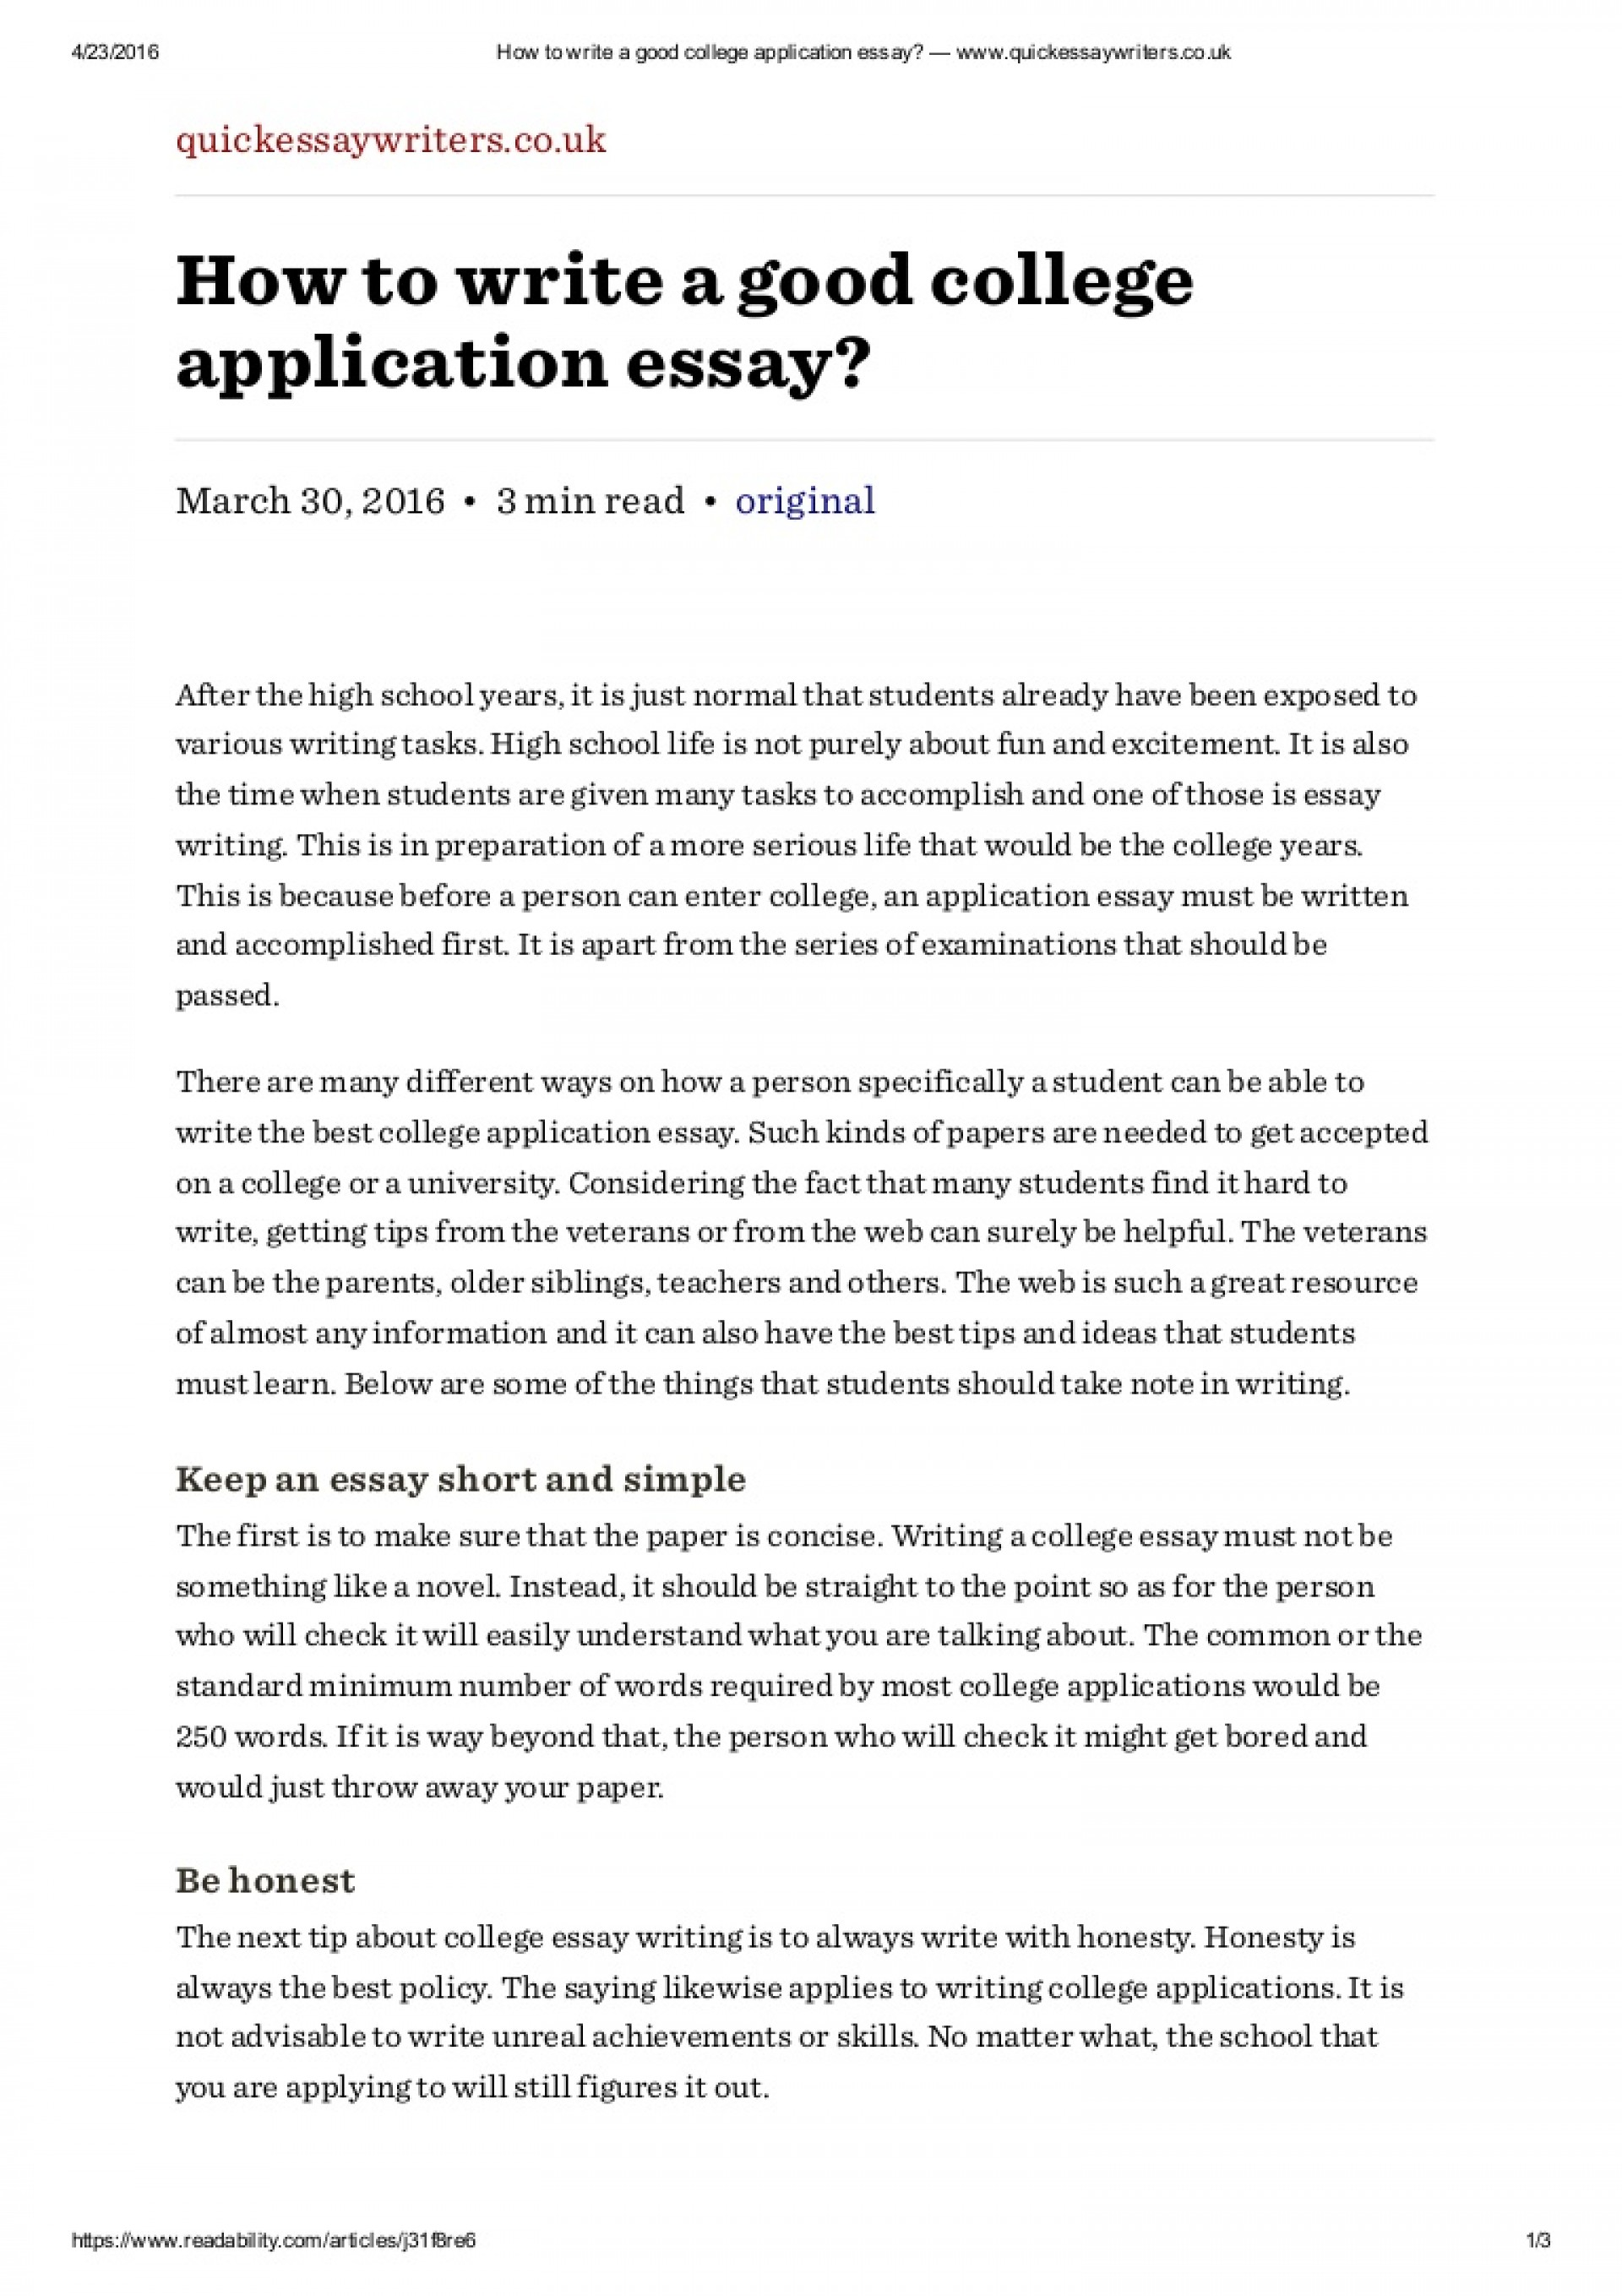 002 Howtowriteagoodcollegeapplicationessaywww Thumbnail Essay Example Writing College Application Marvelous Essays Tips For Level Admission Sample Guide To 1920